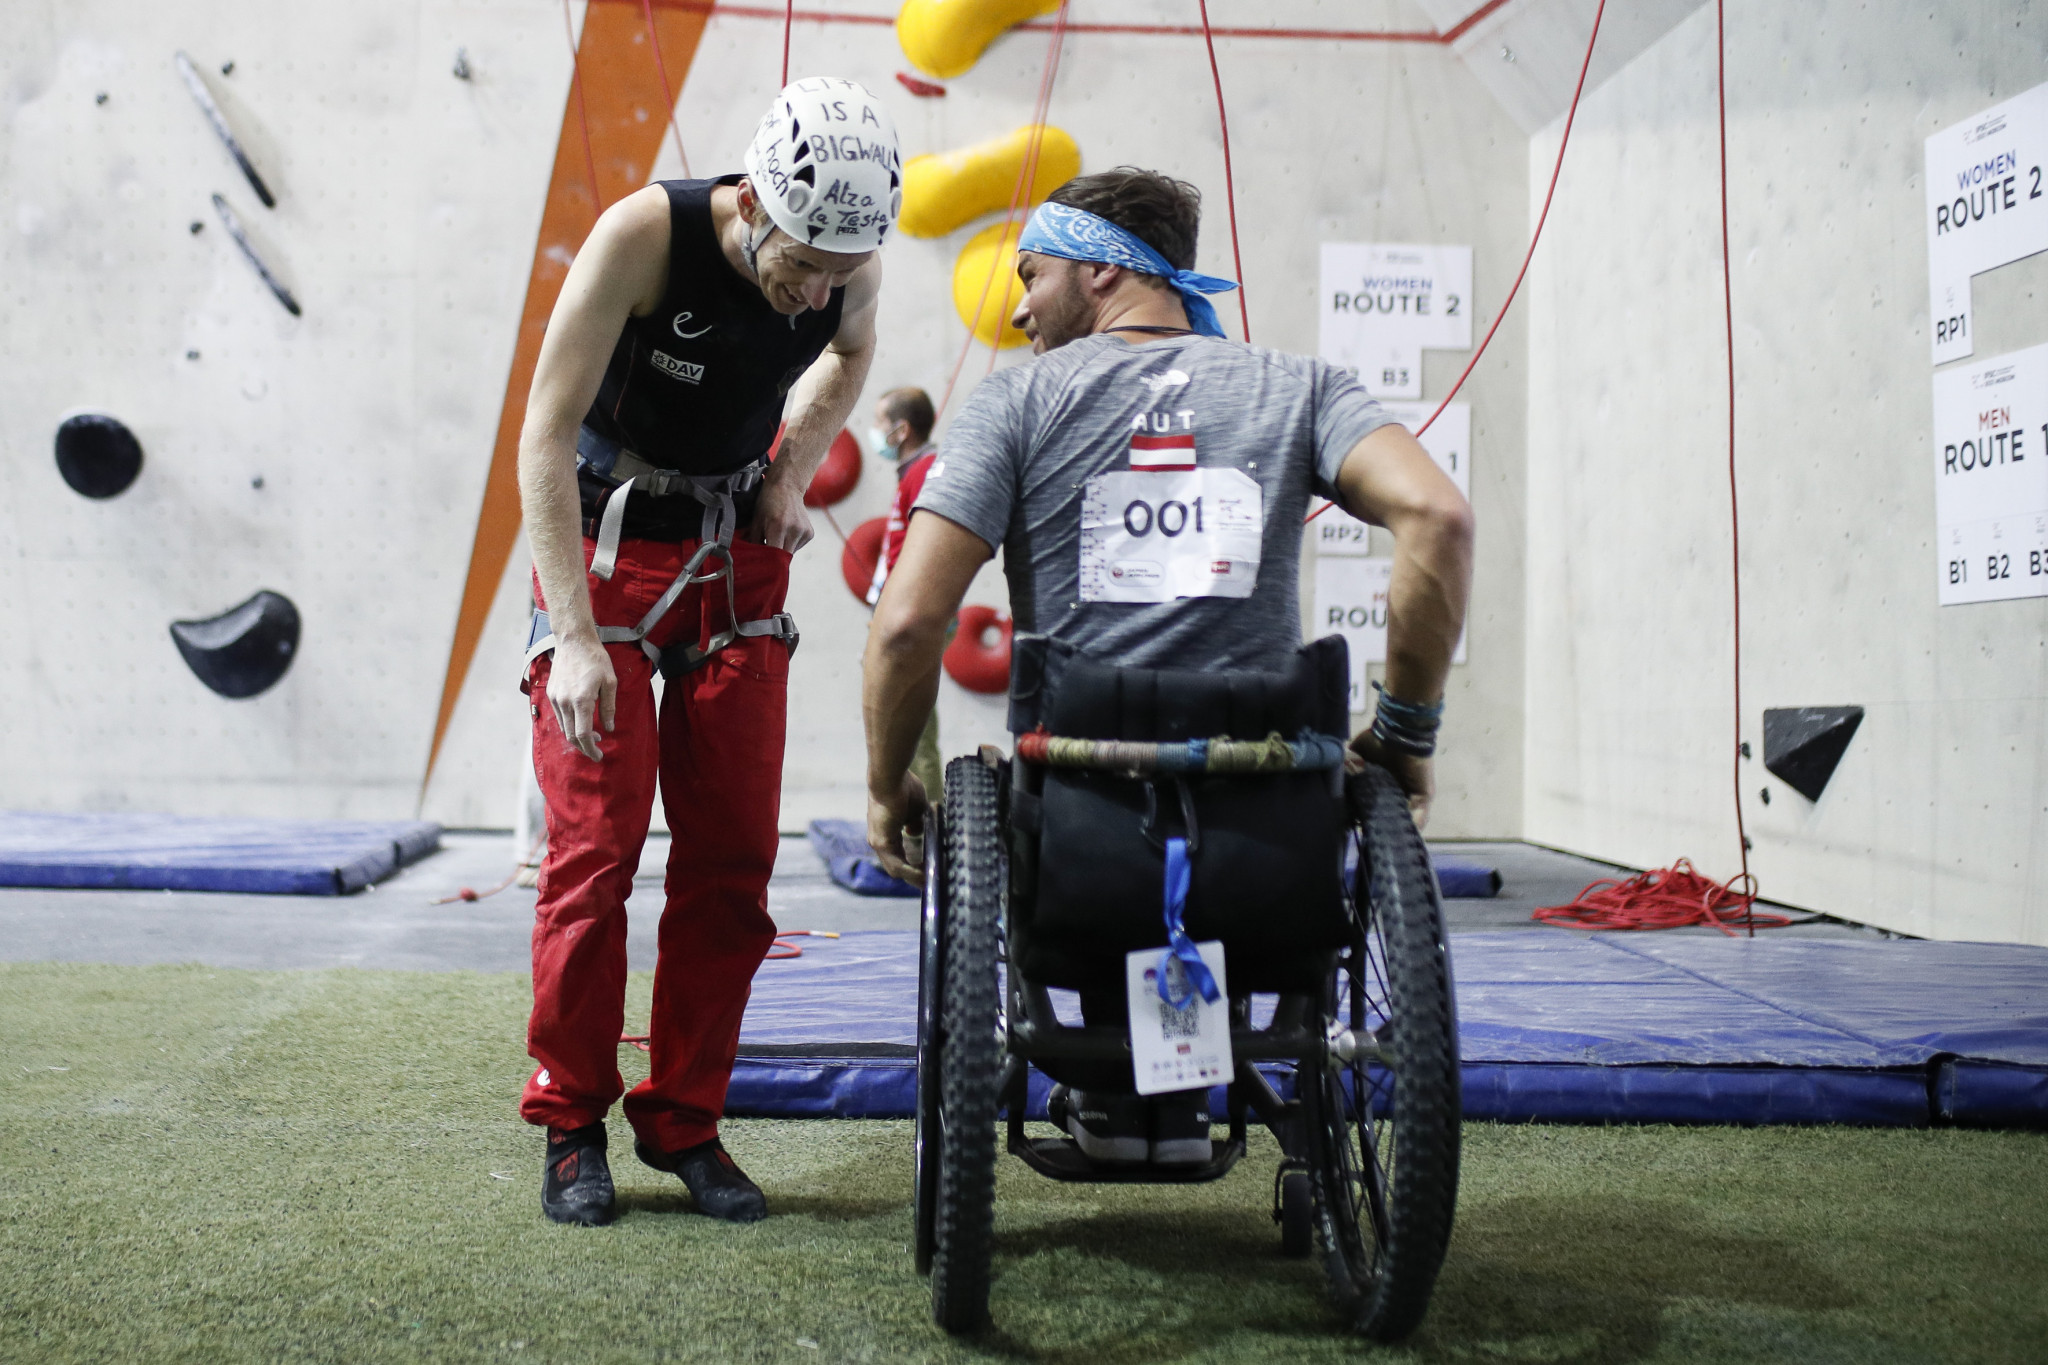 Para climbing champions crowned at IFSC World Championships in Moscow